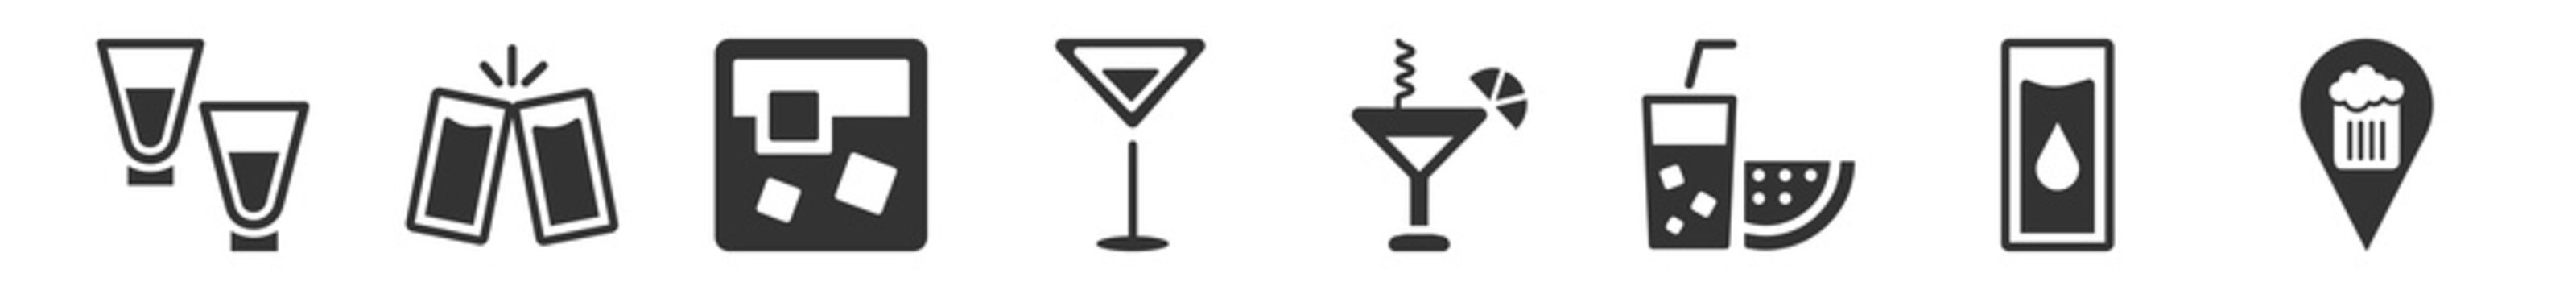 filled set of drinks icons. glyph vector icons such as shots, cheers, white russian drink, 007 martini, lagoon, pub. vector illustration.